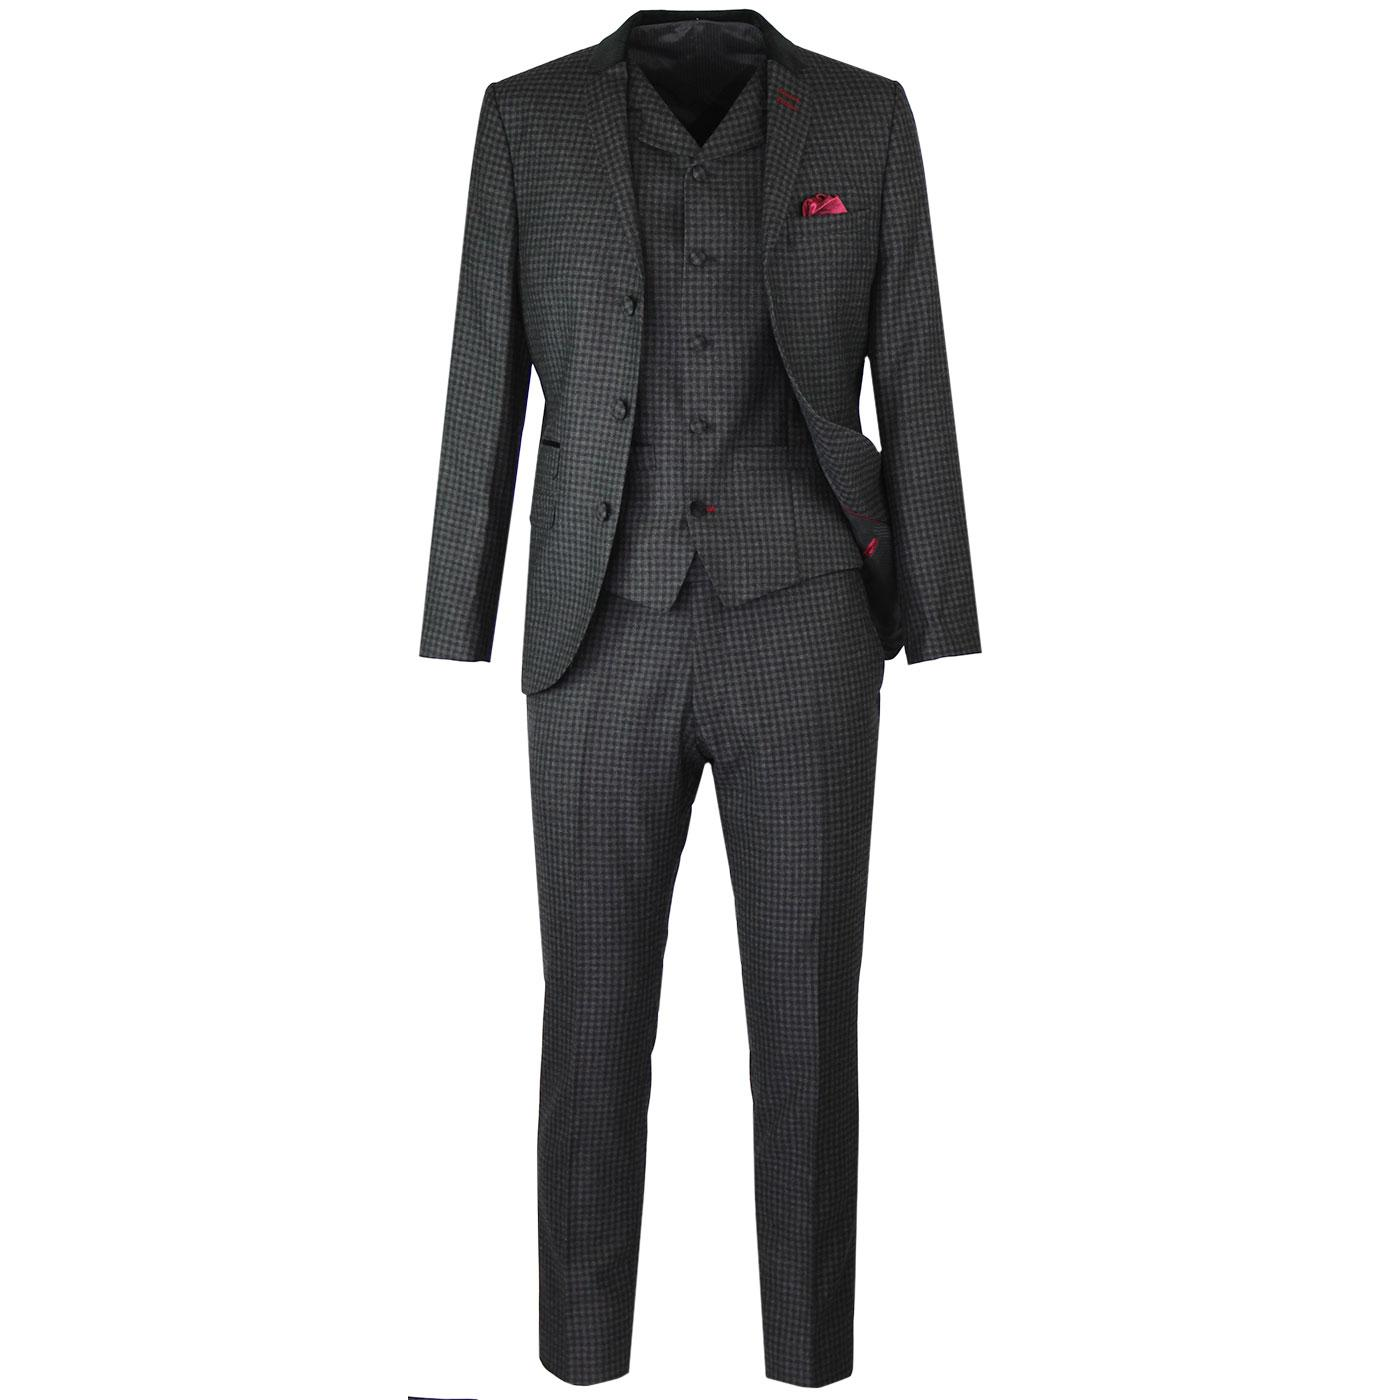 MADCAP ENGLAND Cord Collar Gingham Check Mod Suit